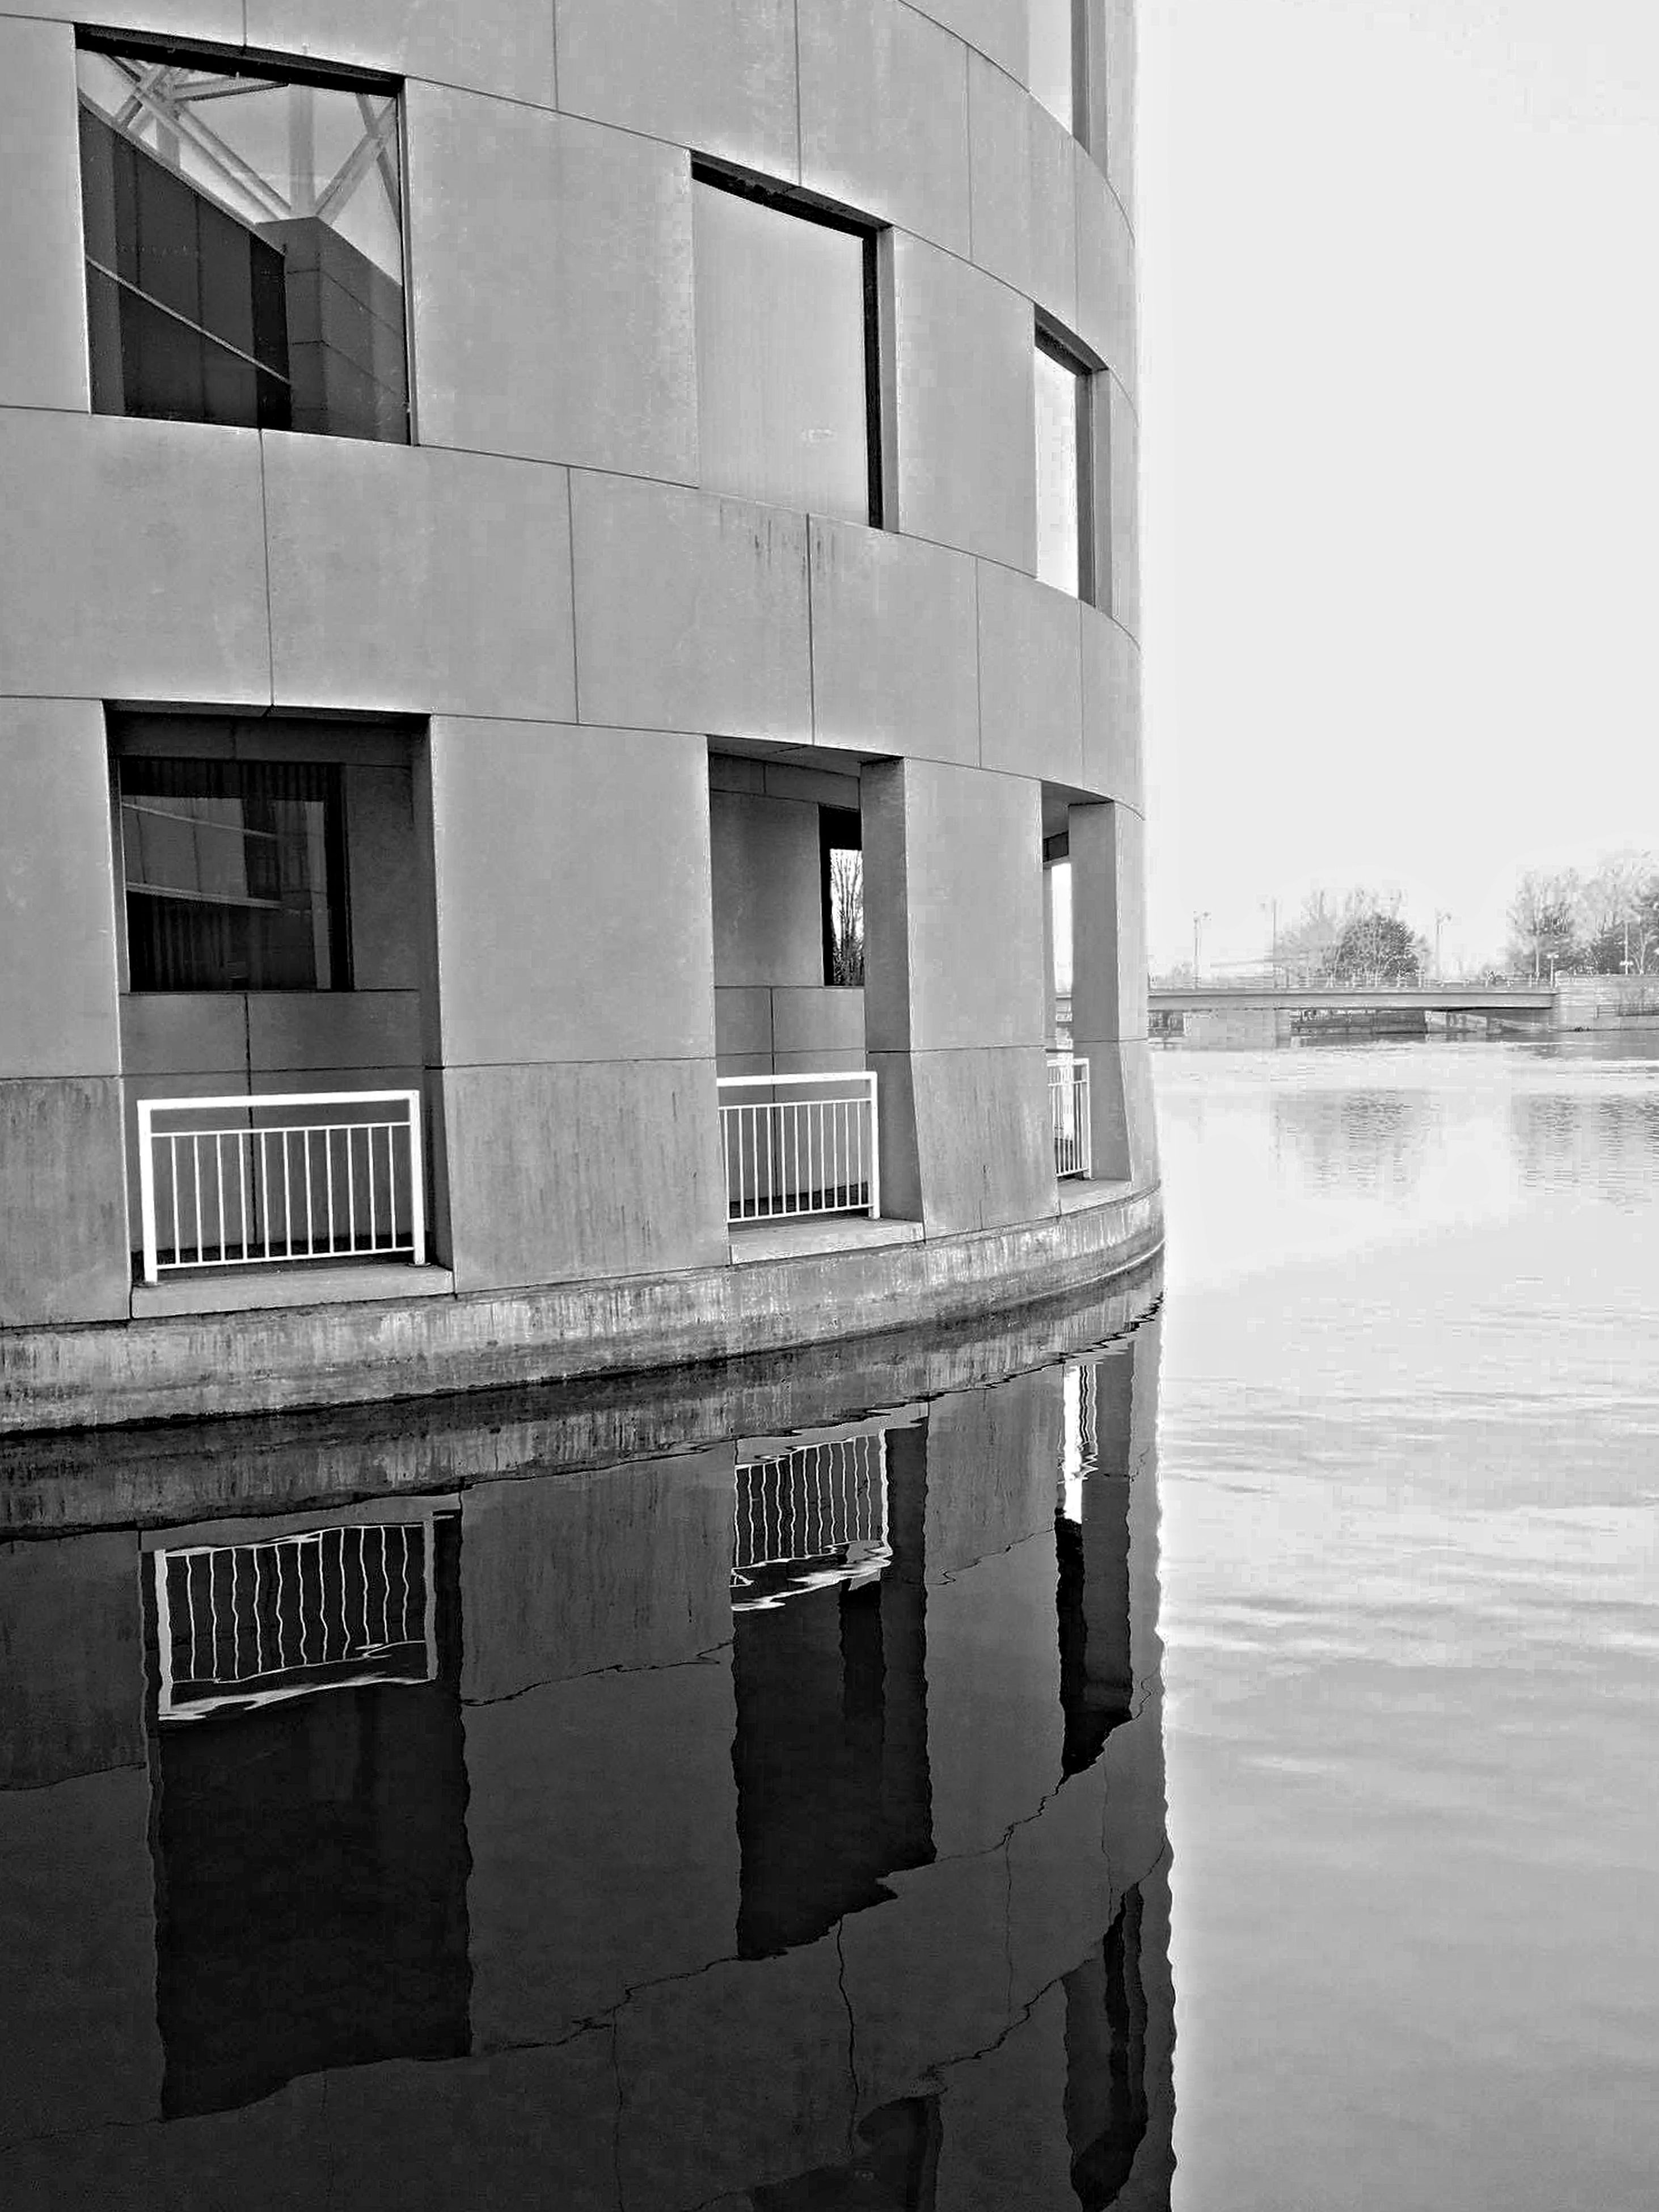 architecture, building exterior, built structure, window, reflection, building, water, waterfront, city, day, outdoors, residential building, residential structure, no people, clear sky, canal, transportation, sky, river, house